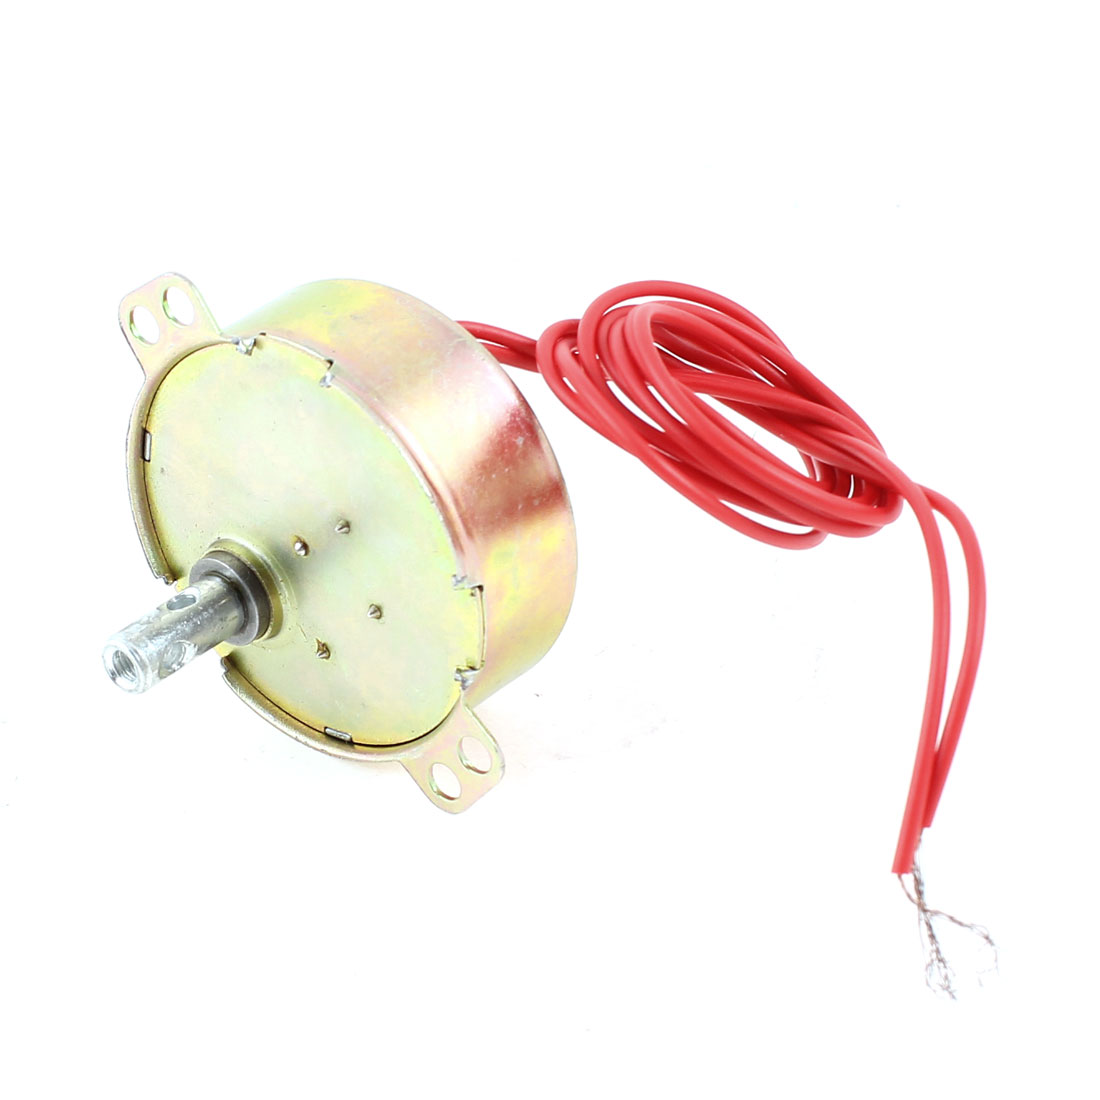 AC220V 50/60Hz 4W Wired Microwave Oven Synchronous Motor Brass Tone